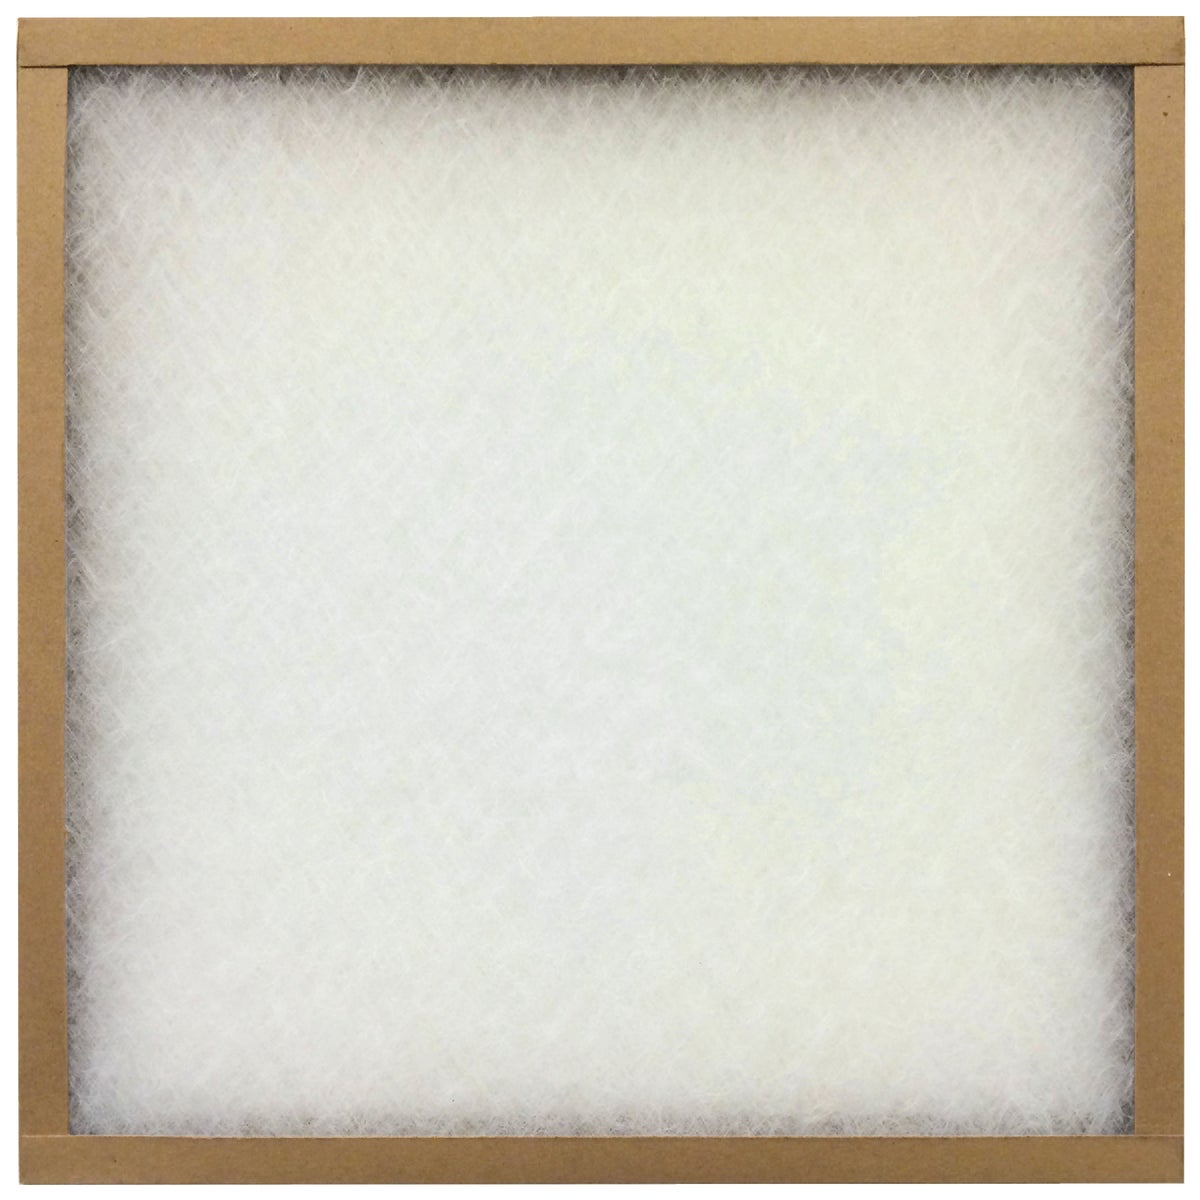 20X20X1 FBRGL AIR FILTER - 10055.012020 by Flanders Corp